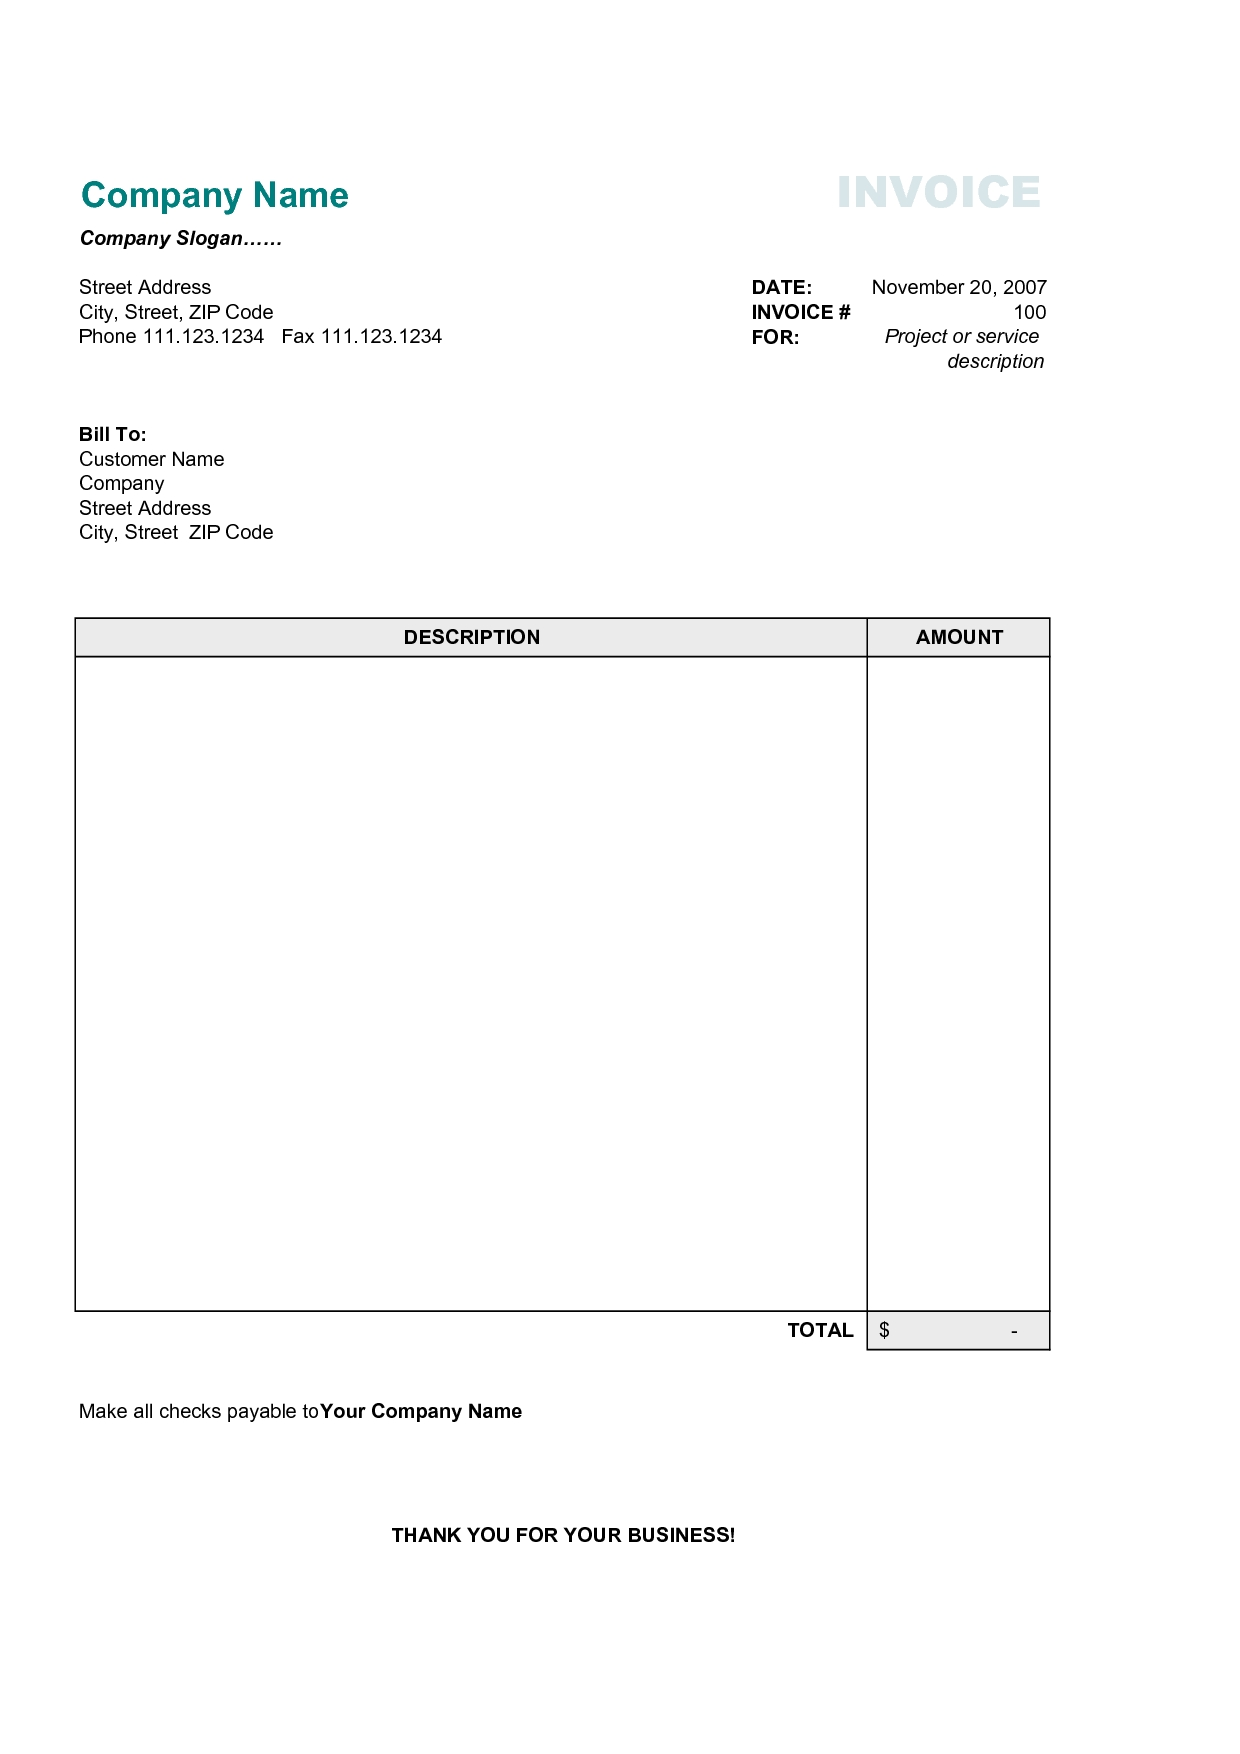 Amazing Simple Word Invoice Template * Invoice Template Ideas Simple Word Invoice  Template Doc572739 Personal Invoice Template Word Invoice Template For 1240  X 1754 ... Regard To Personal Invoice Template Word